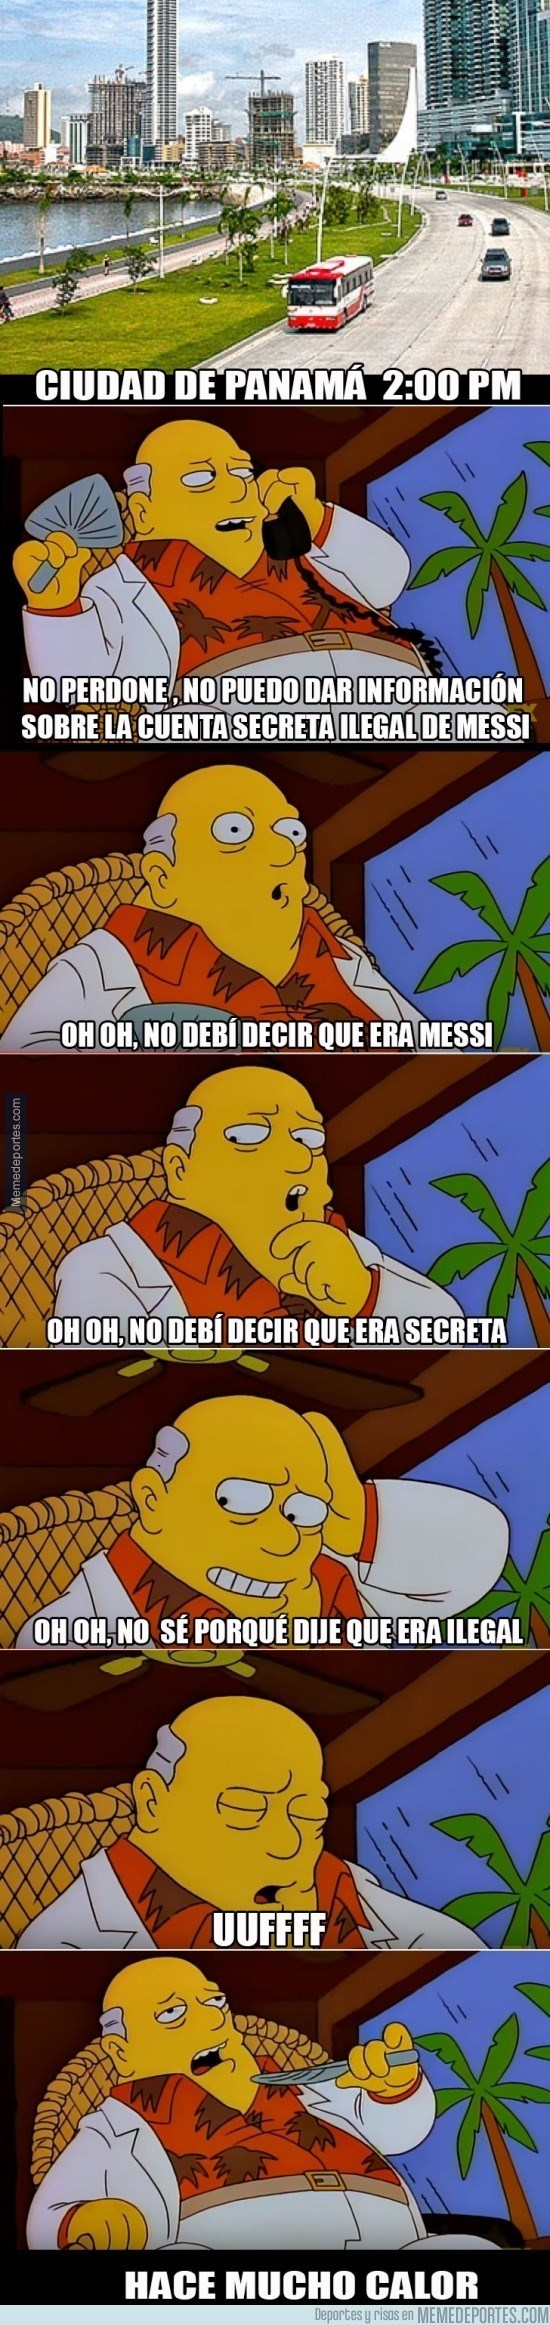 messi problemas fiscales